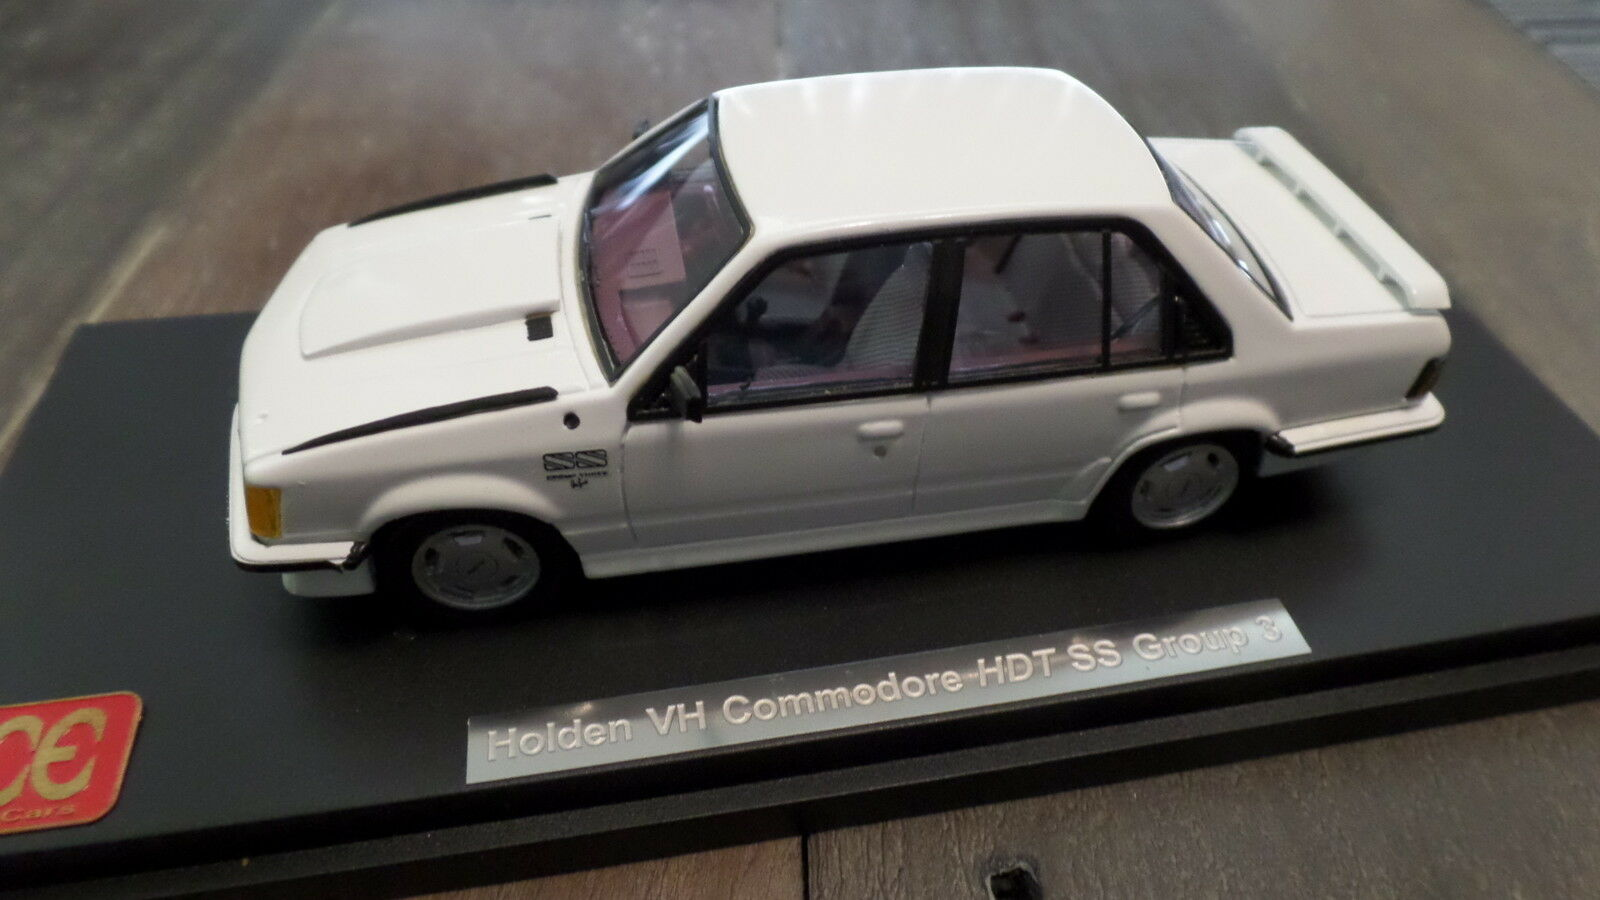 HDT 1980 Holden VH Commodore SS Group 3 in bianca - 1-43 scale By ACE